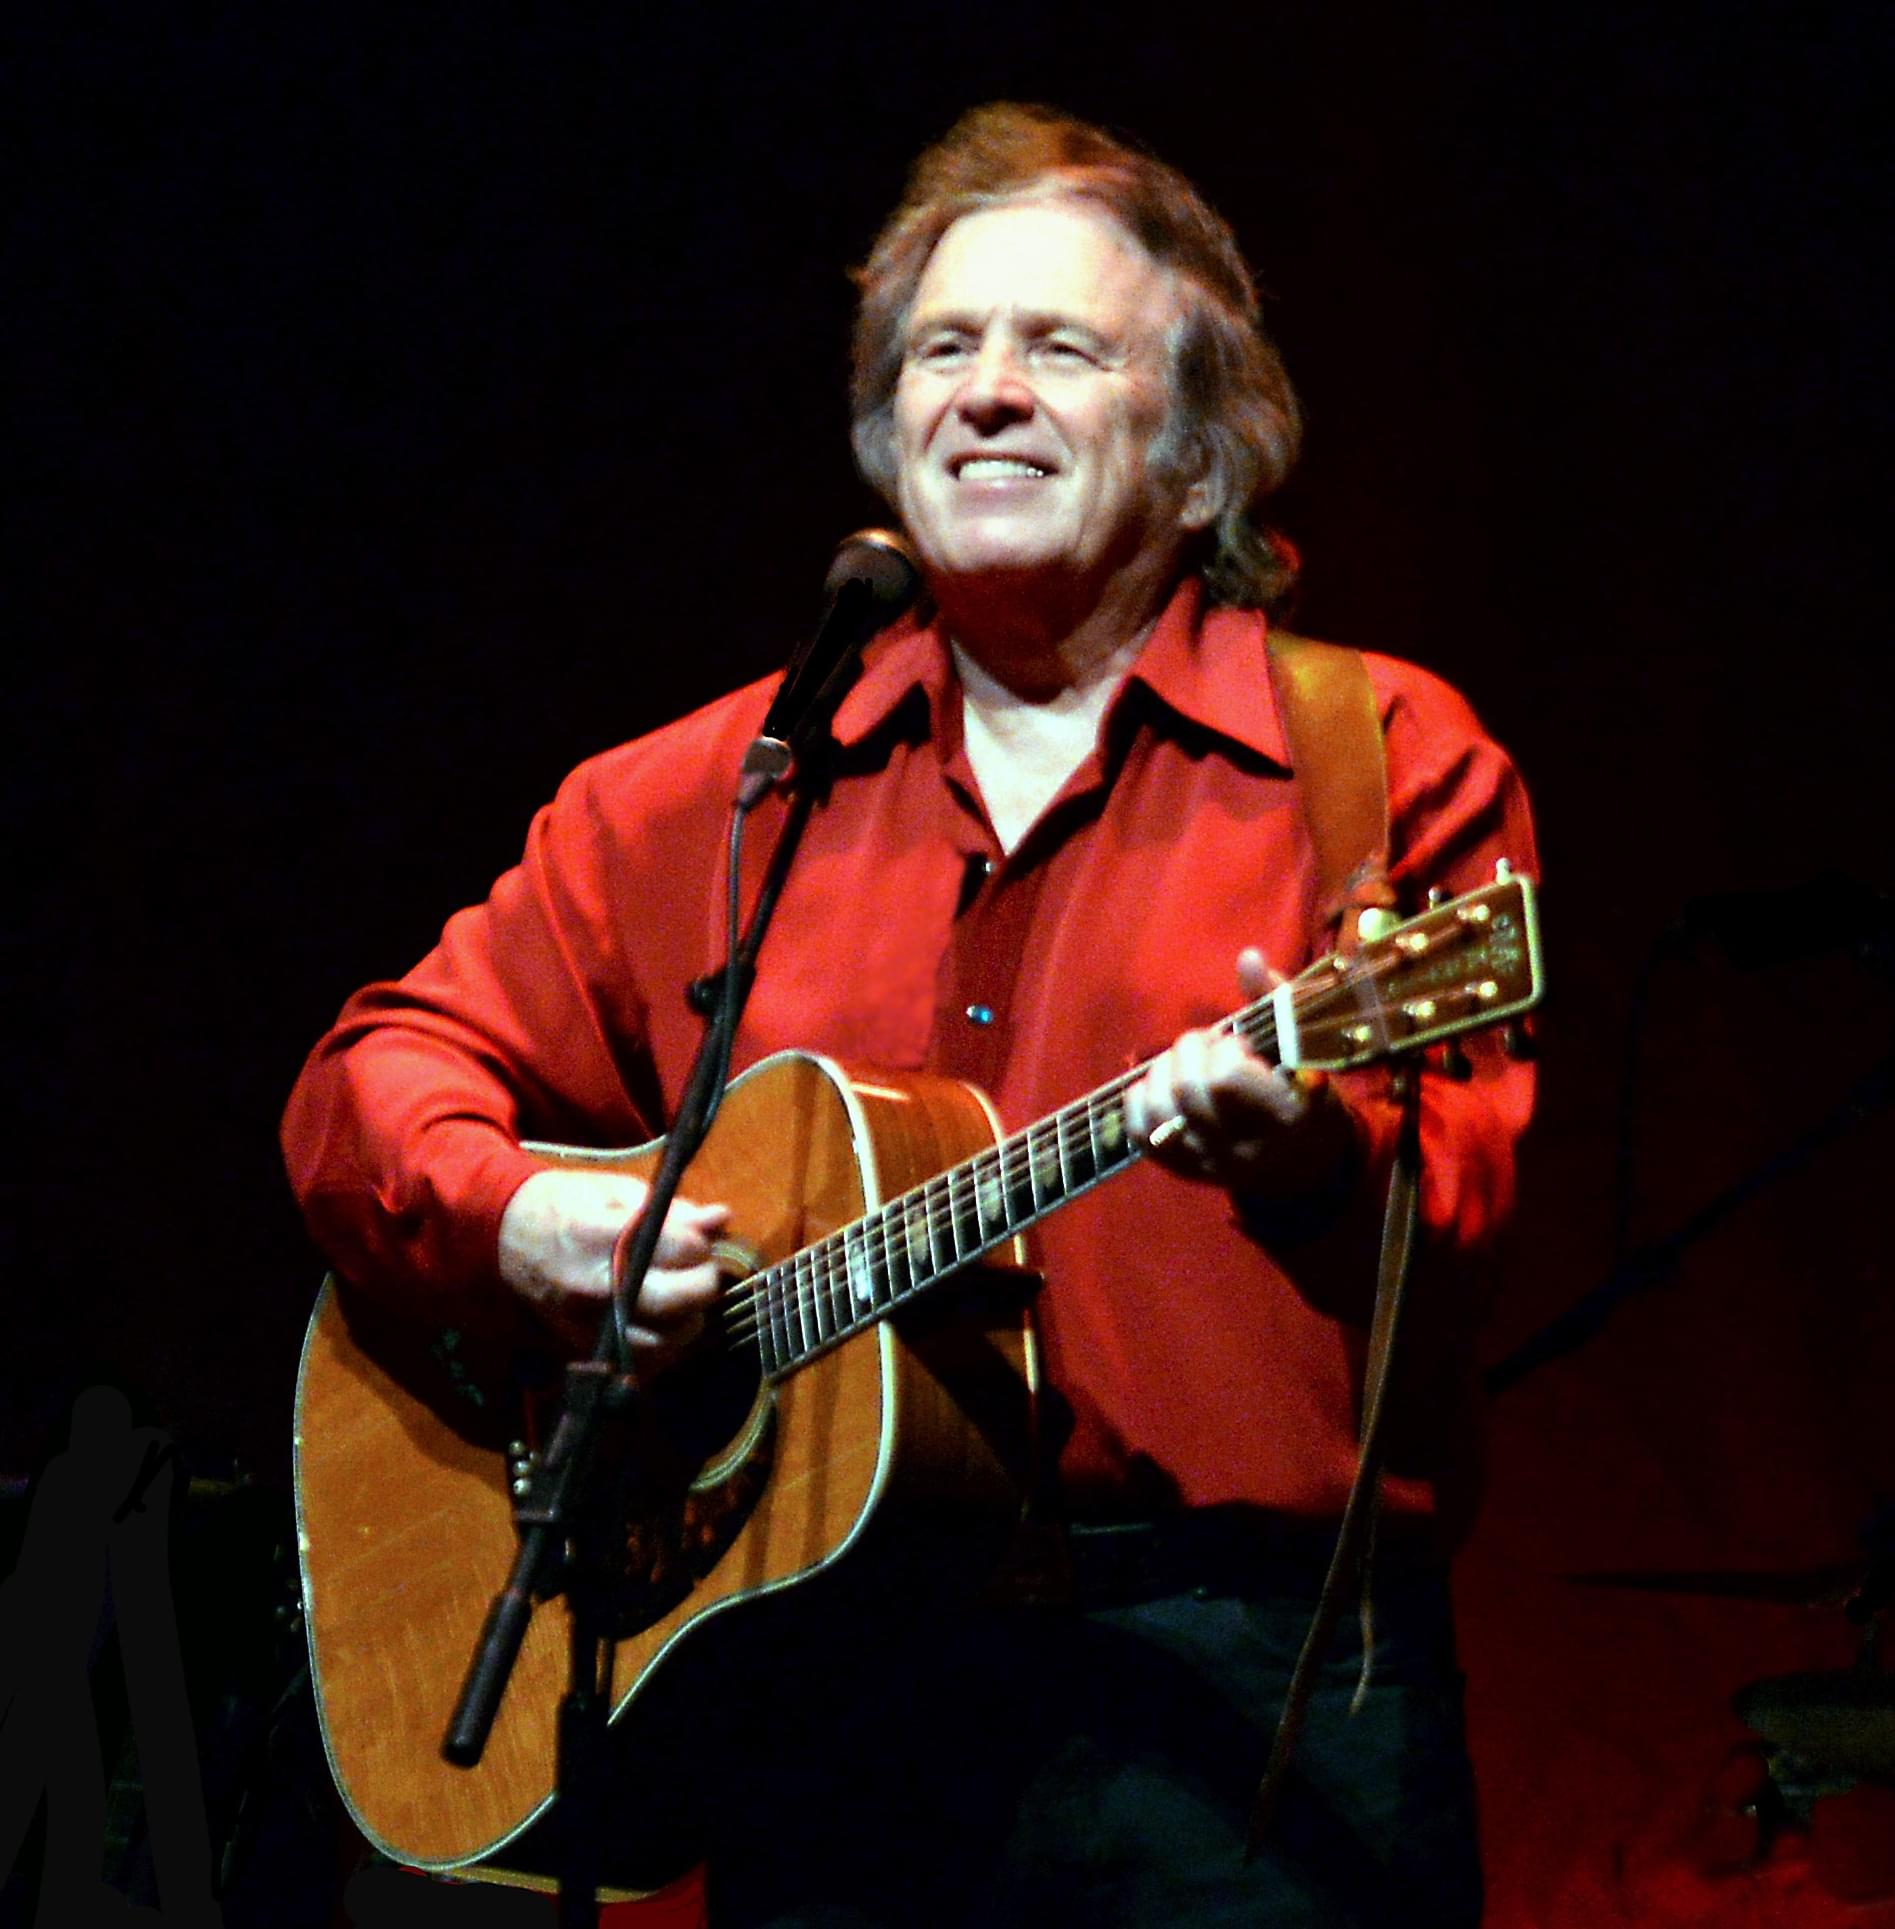 1/25: Don McLean at Fox Theatre